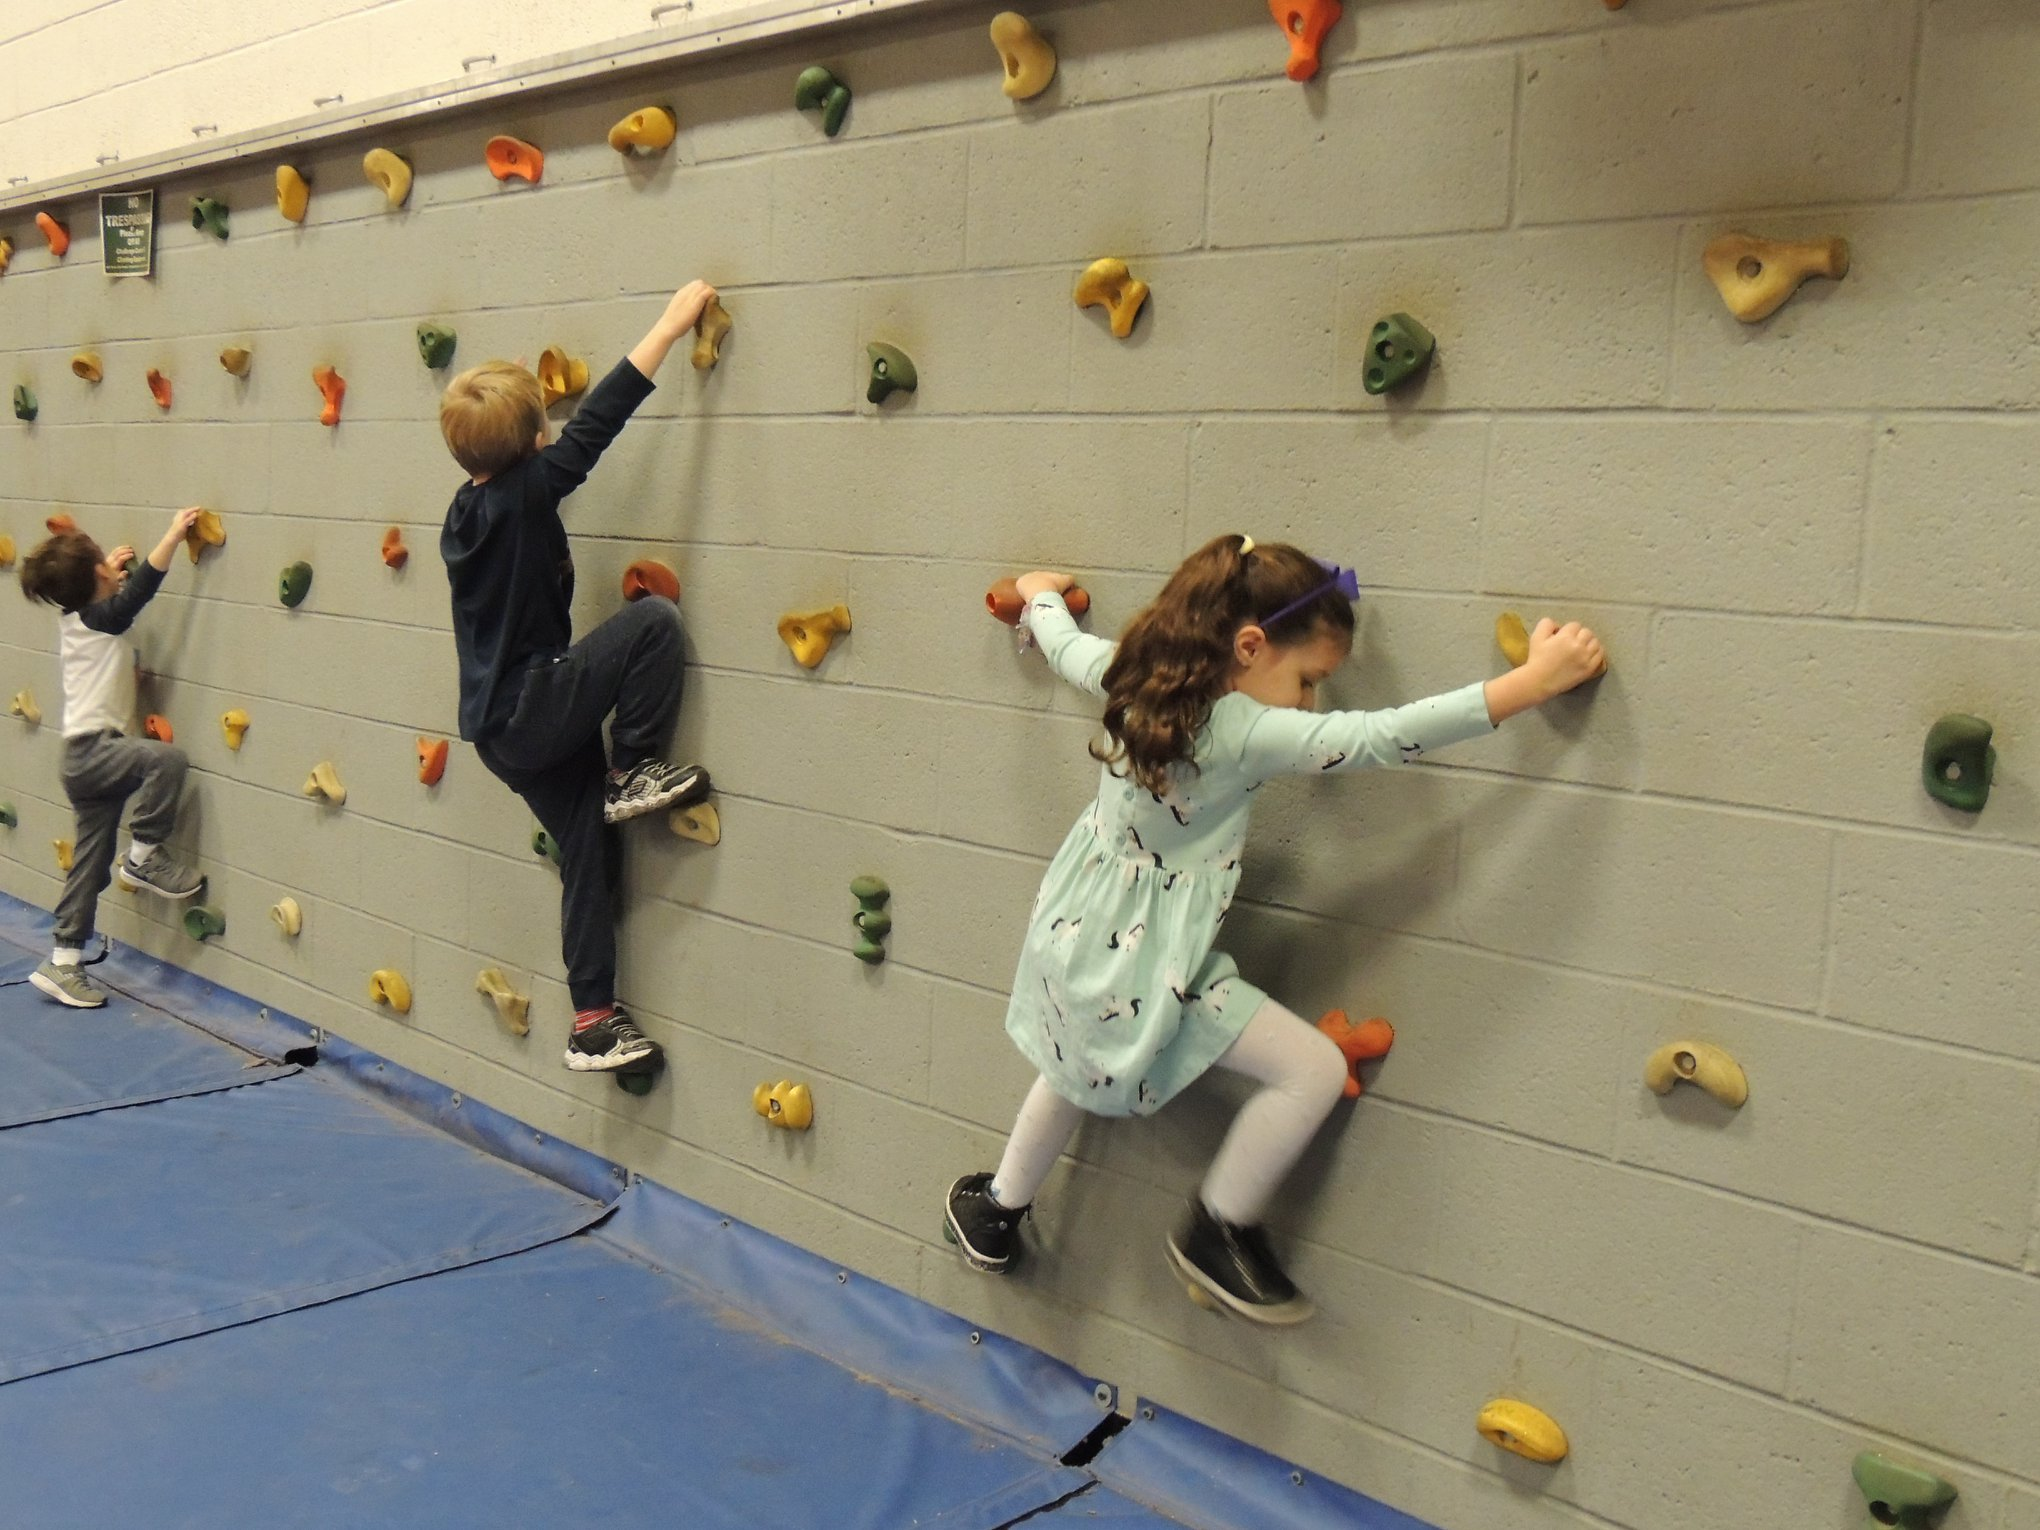 GH Rock Climbing in the Gym